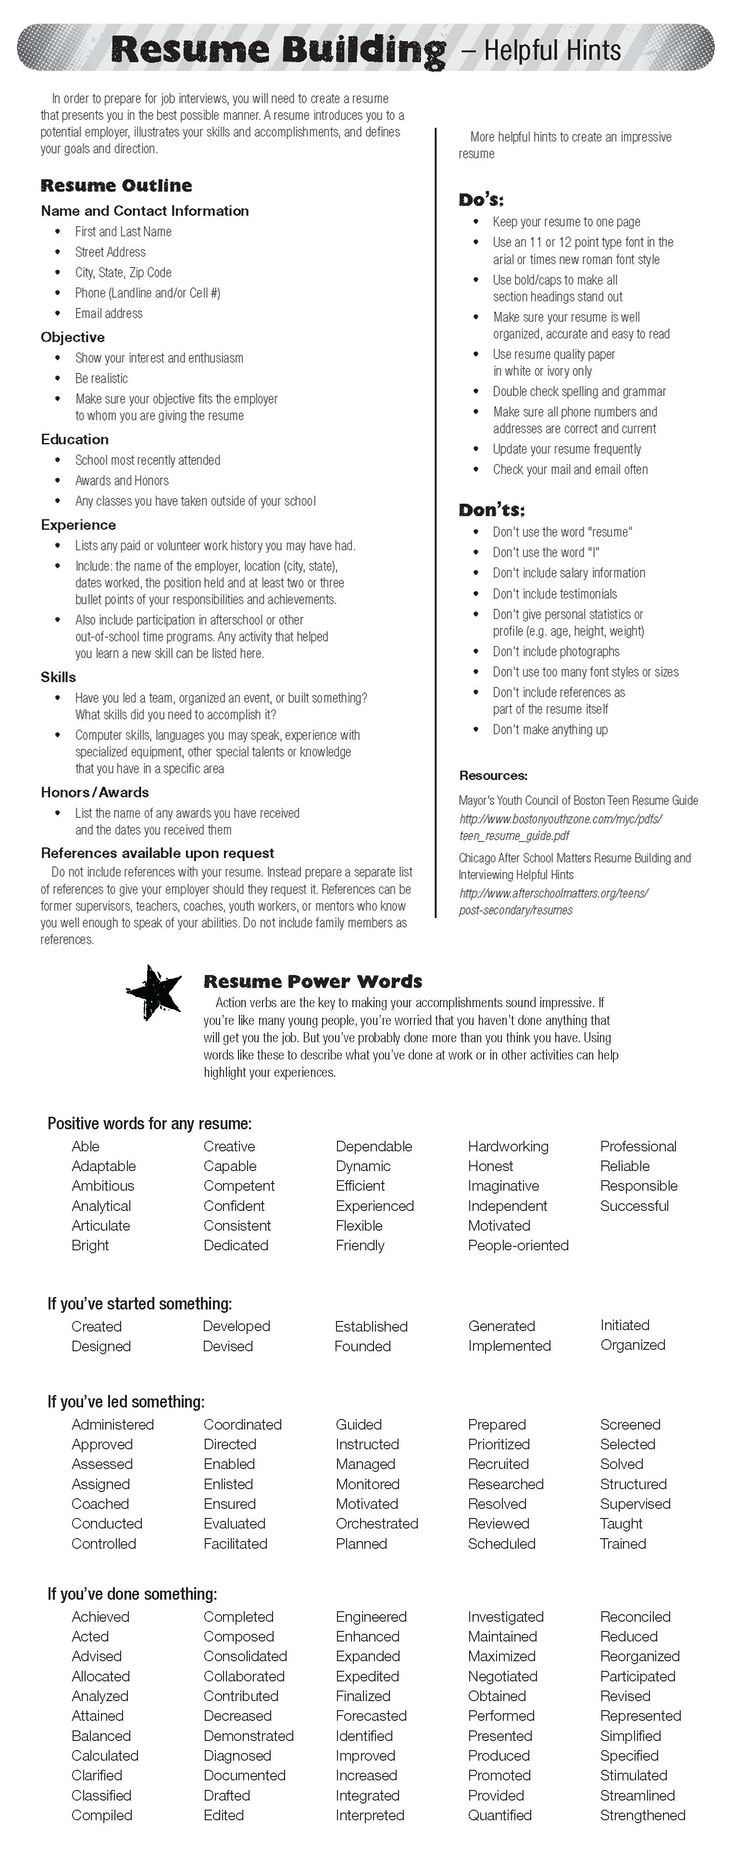 Picnictoimpeachus  Surprising  Ideas About Resume On Pinterest  Cv Format Resume Cv And  With Goodlooking  Ideas About Resume On Pinterest  Cv Format Resume Cv And Resume Templates With Delightful How To Write A Business Resume Also Resume Tutor In Addition Tips For Making A Resume And Resume For Machine Operator As Well As Resume Writers Service Additionally Creating A Great Resume From Pinterestcom With Picnictoimpeachus  Goodlooking  Ideas About Resume On Pinterest  Cv Format Resume Cv And  With Delightful  Ideas About Resume On Pinterest  Cv Format Resume Cv And Resume Templates And Surprising How To Write A Business Resume Also Resume Tutor In Addition Tips For Making A Resume From Pinterestcom